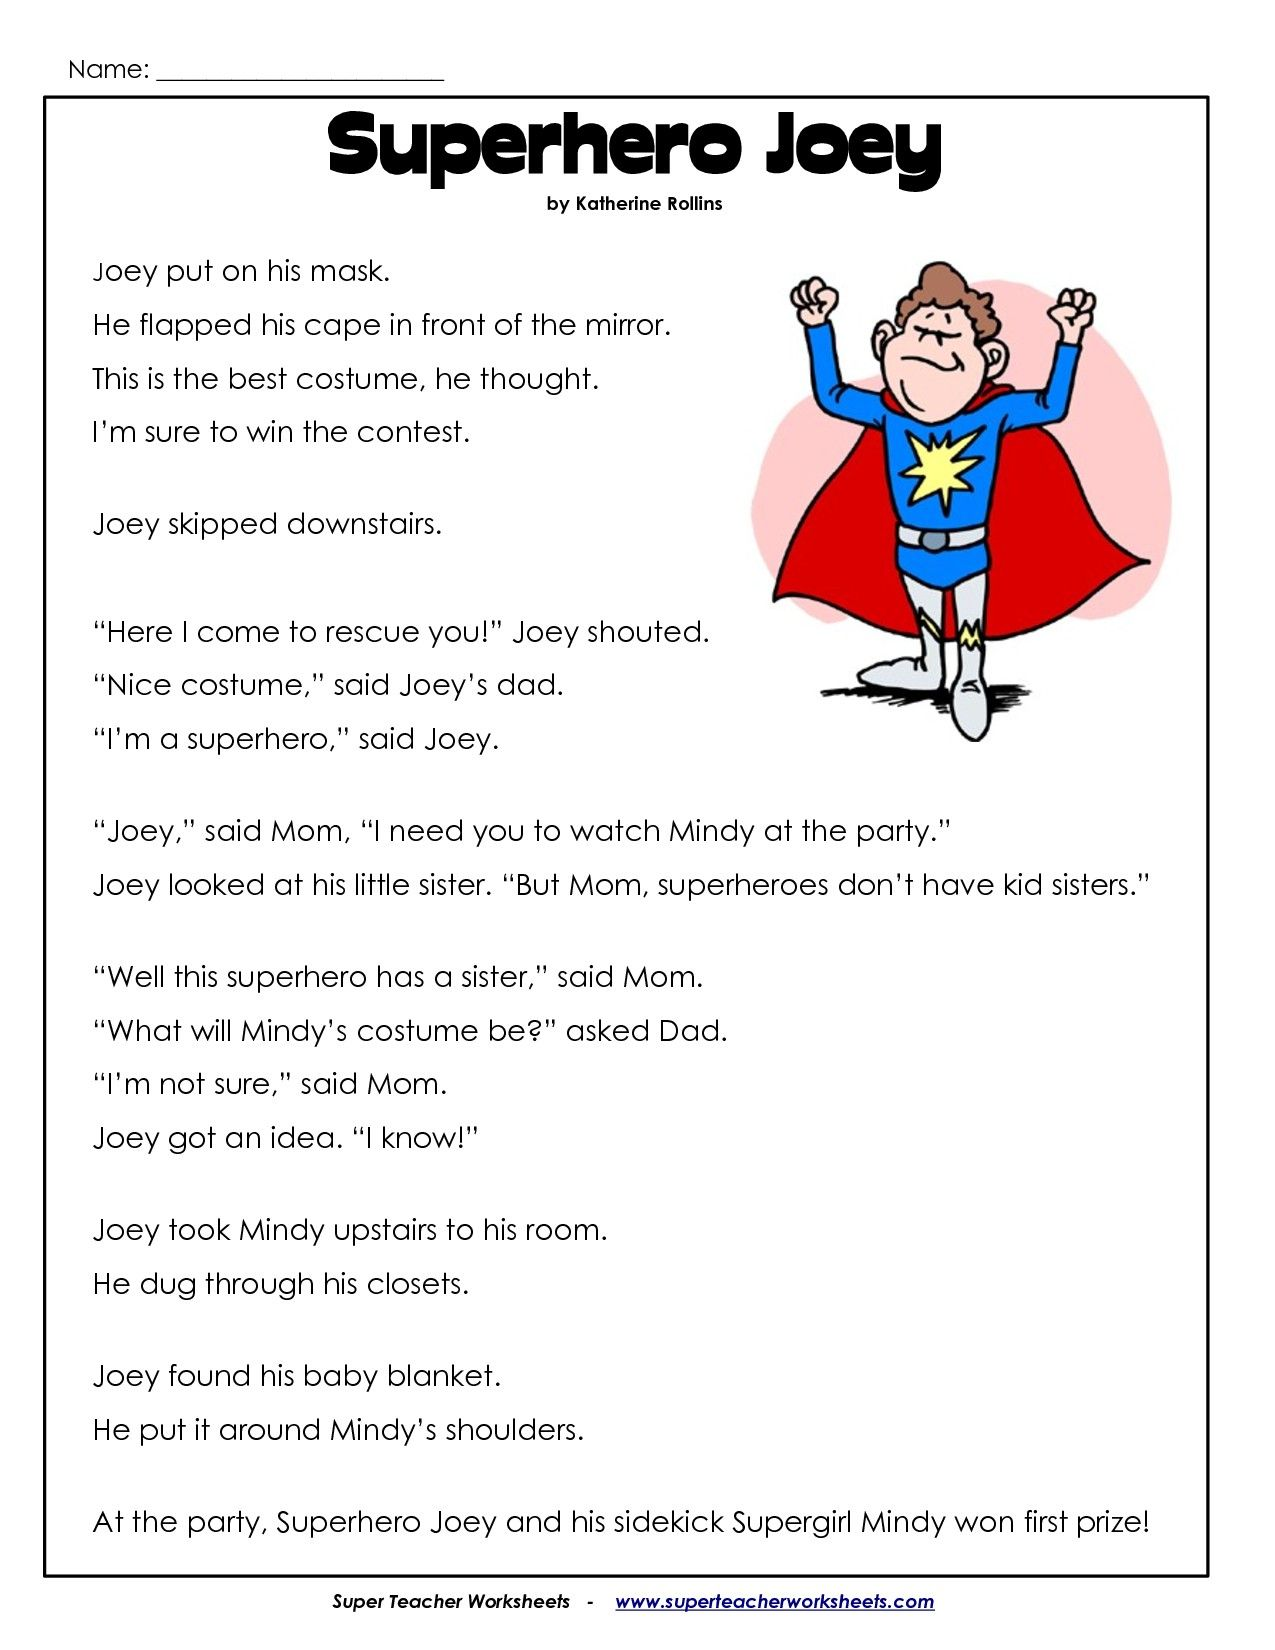 Worksheet Reading For 2nd Grade 2nd grade reading comprehension blizzard bags pinterest worksheets pdf